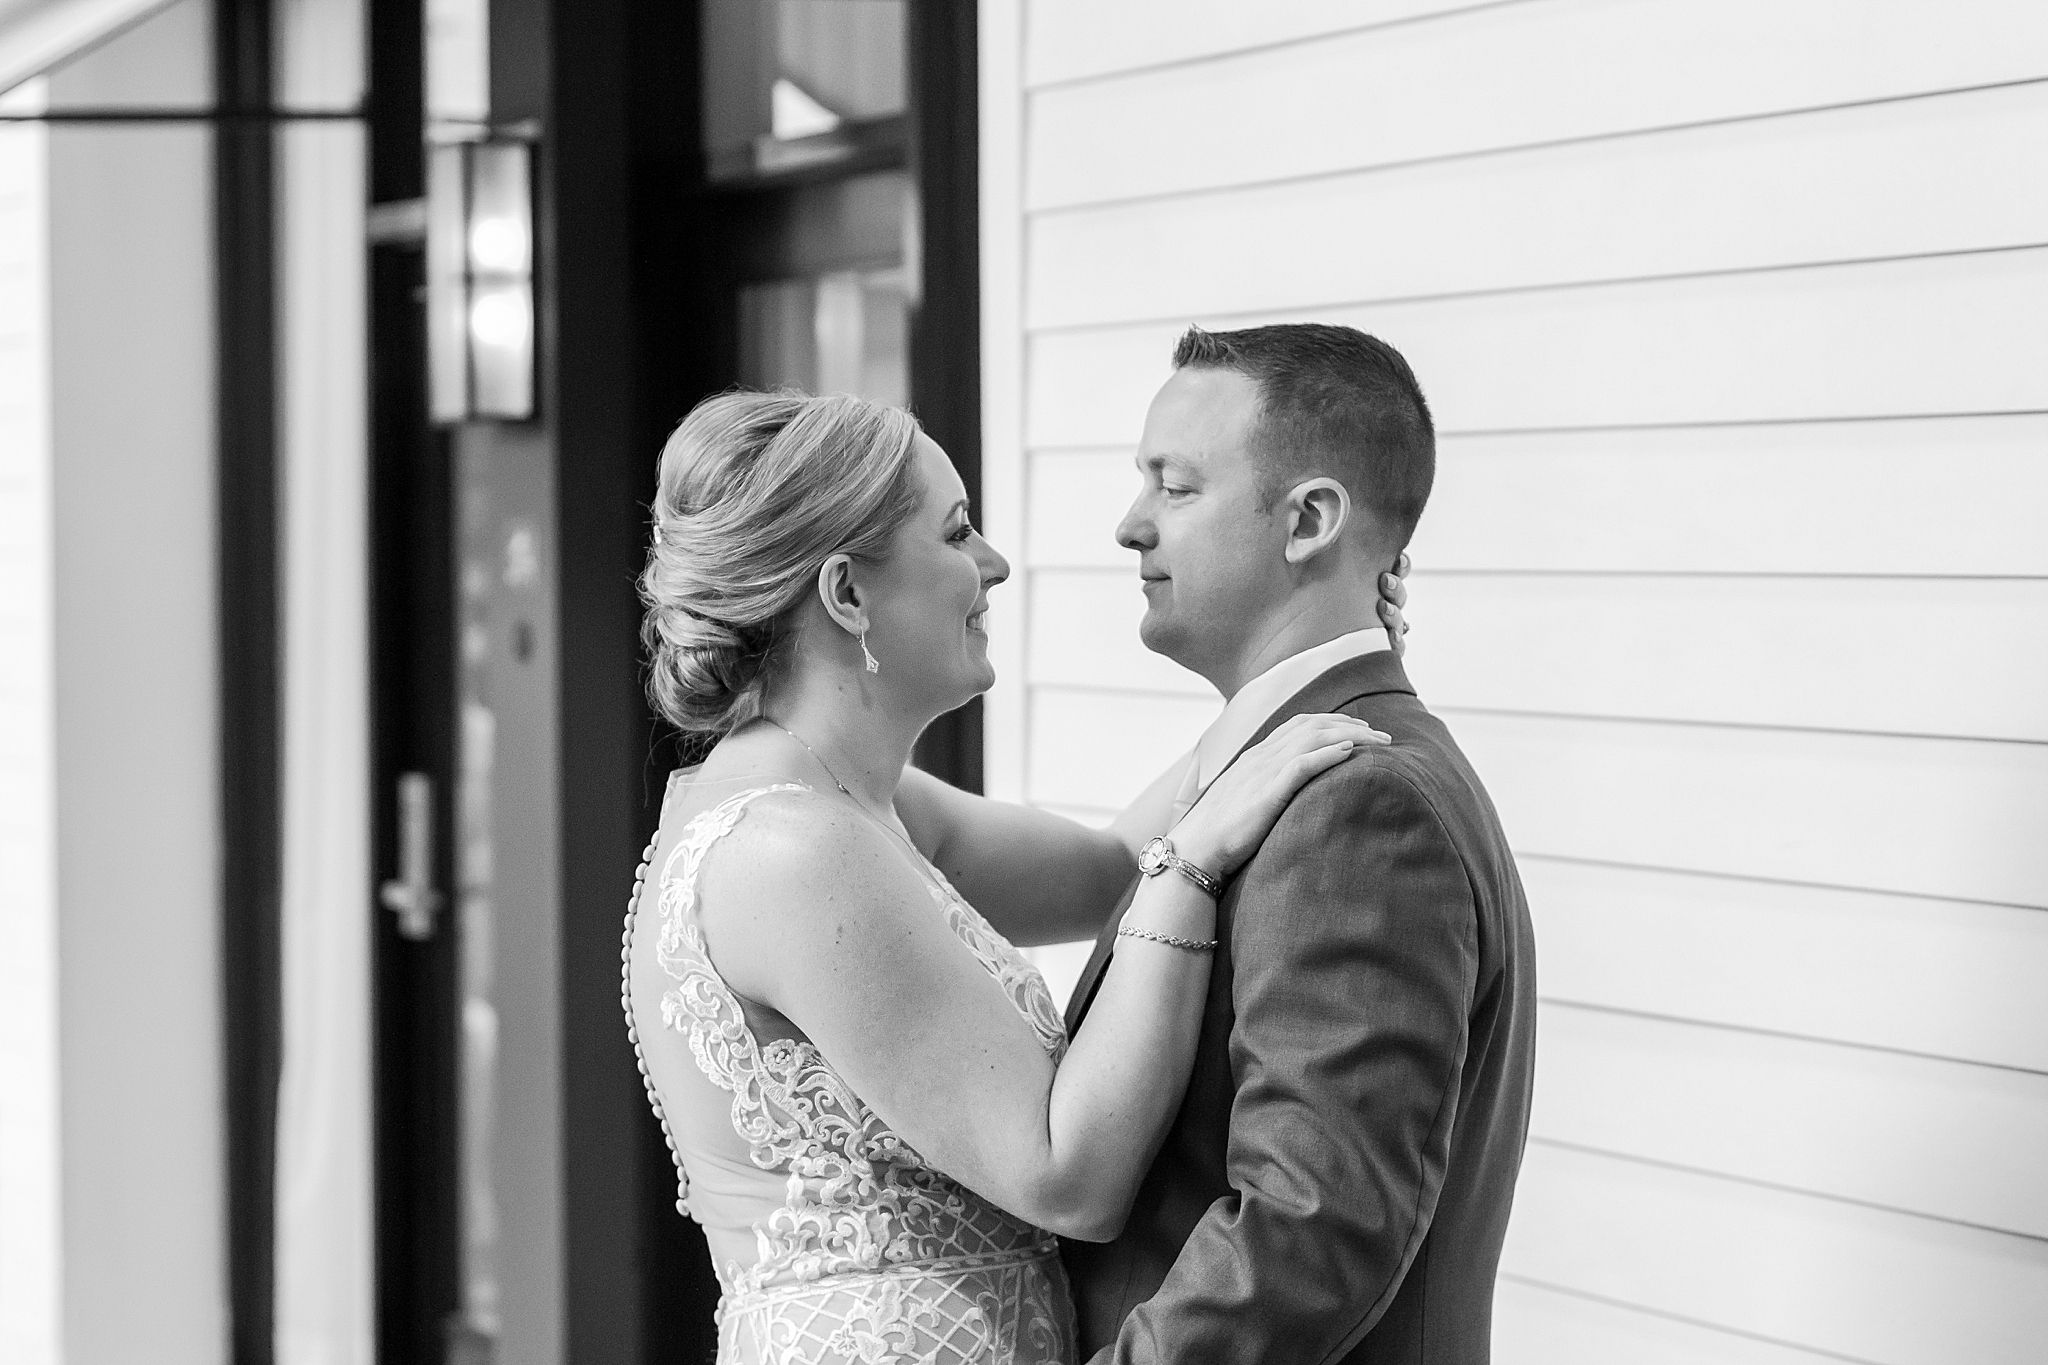 modern-romantic-wedding-photography-at-webers-in-ann-arbor-michigan-by-courtney-carolyn-photography_0050.jpg